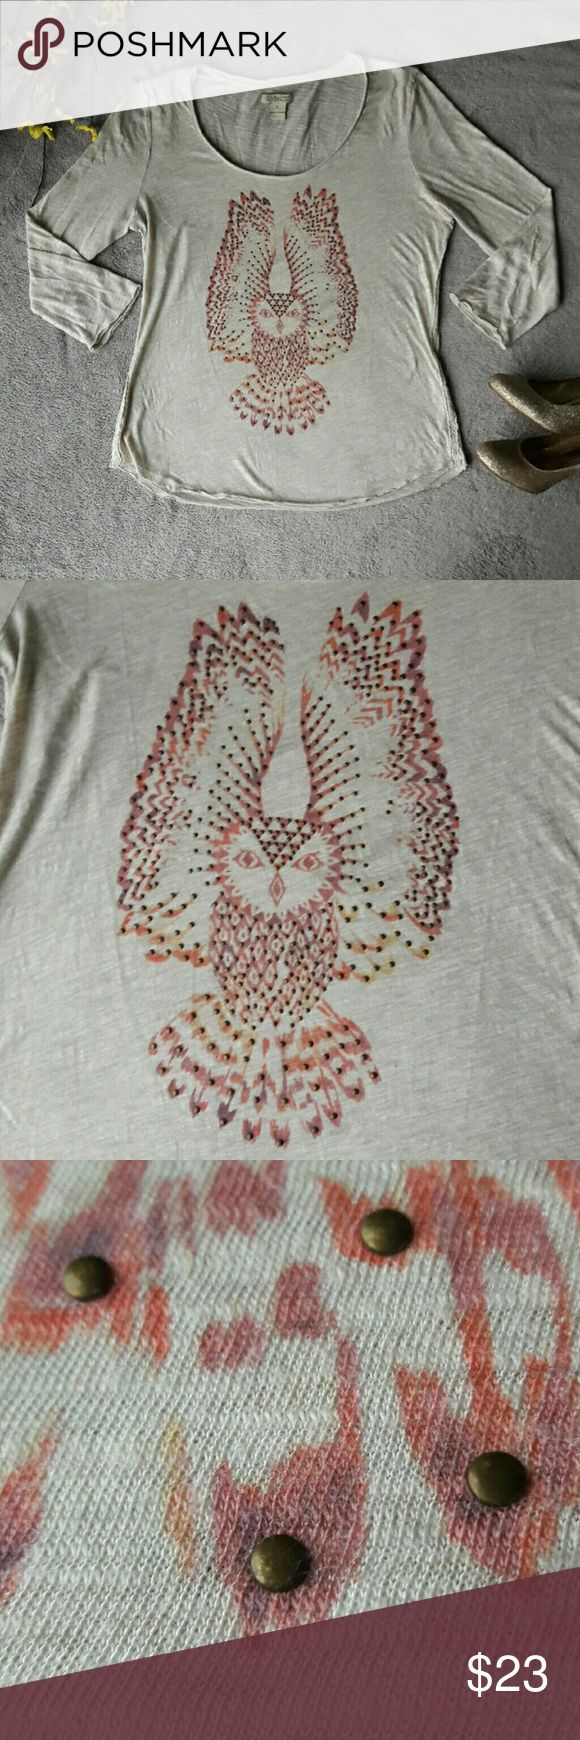 Lucky Brand Heathered Cream Owl Shirt Top A cute shirt from the Lucky Brand. An oatmeal cream color with a multicolored owl on the front. 3/4 length sleeves. No holes or stains.   38 inch bust, 26.5 length, 18.5 inch length. Lucky Brand Tops Tees - Short Sleeve